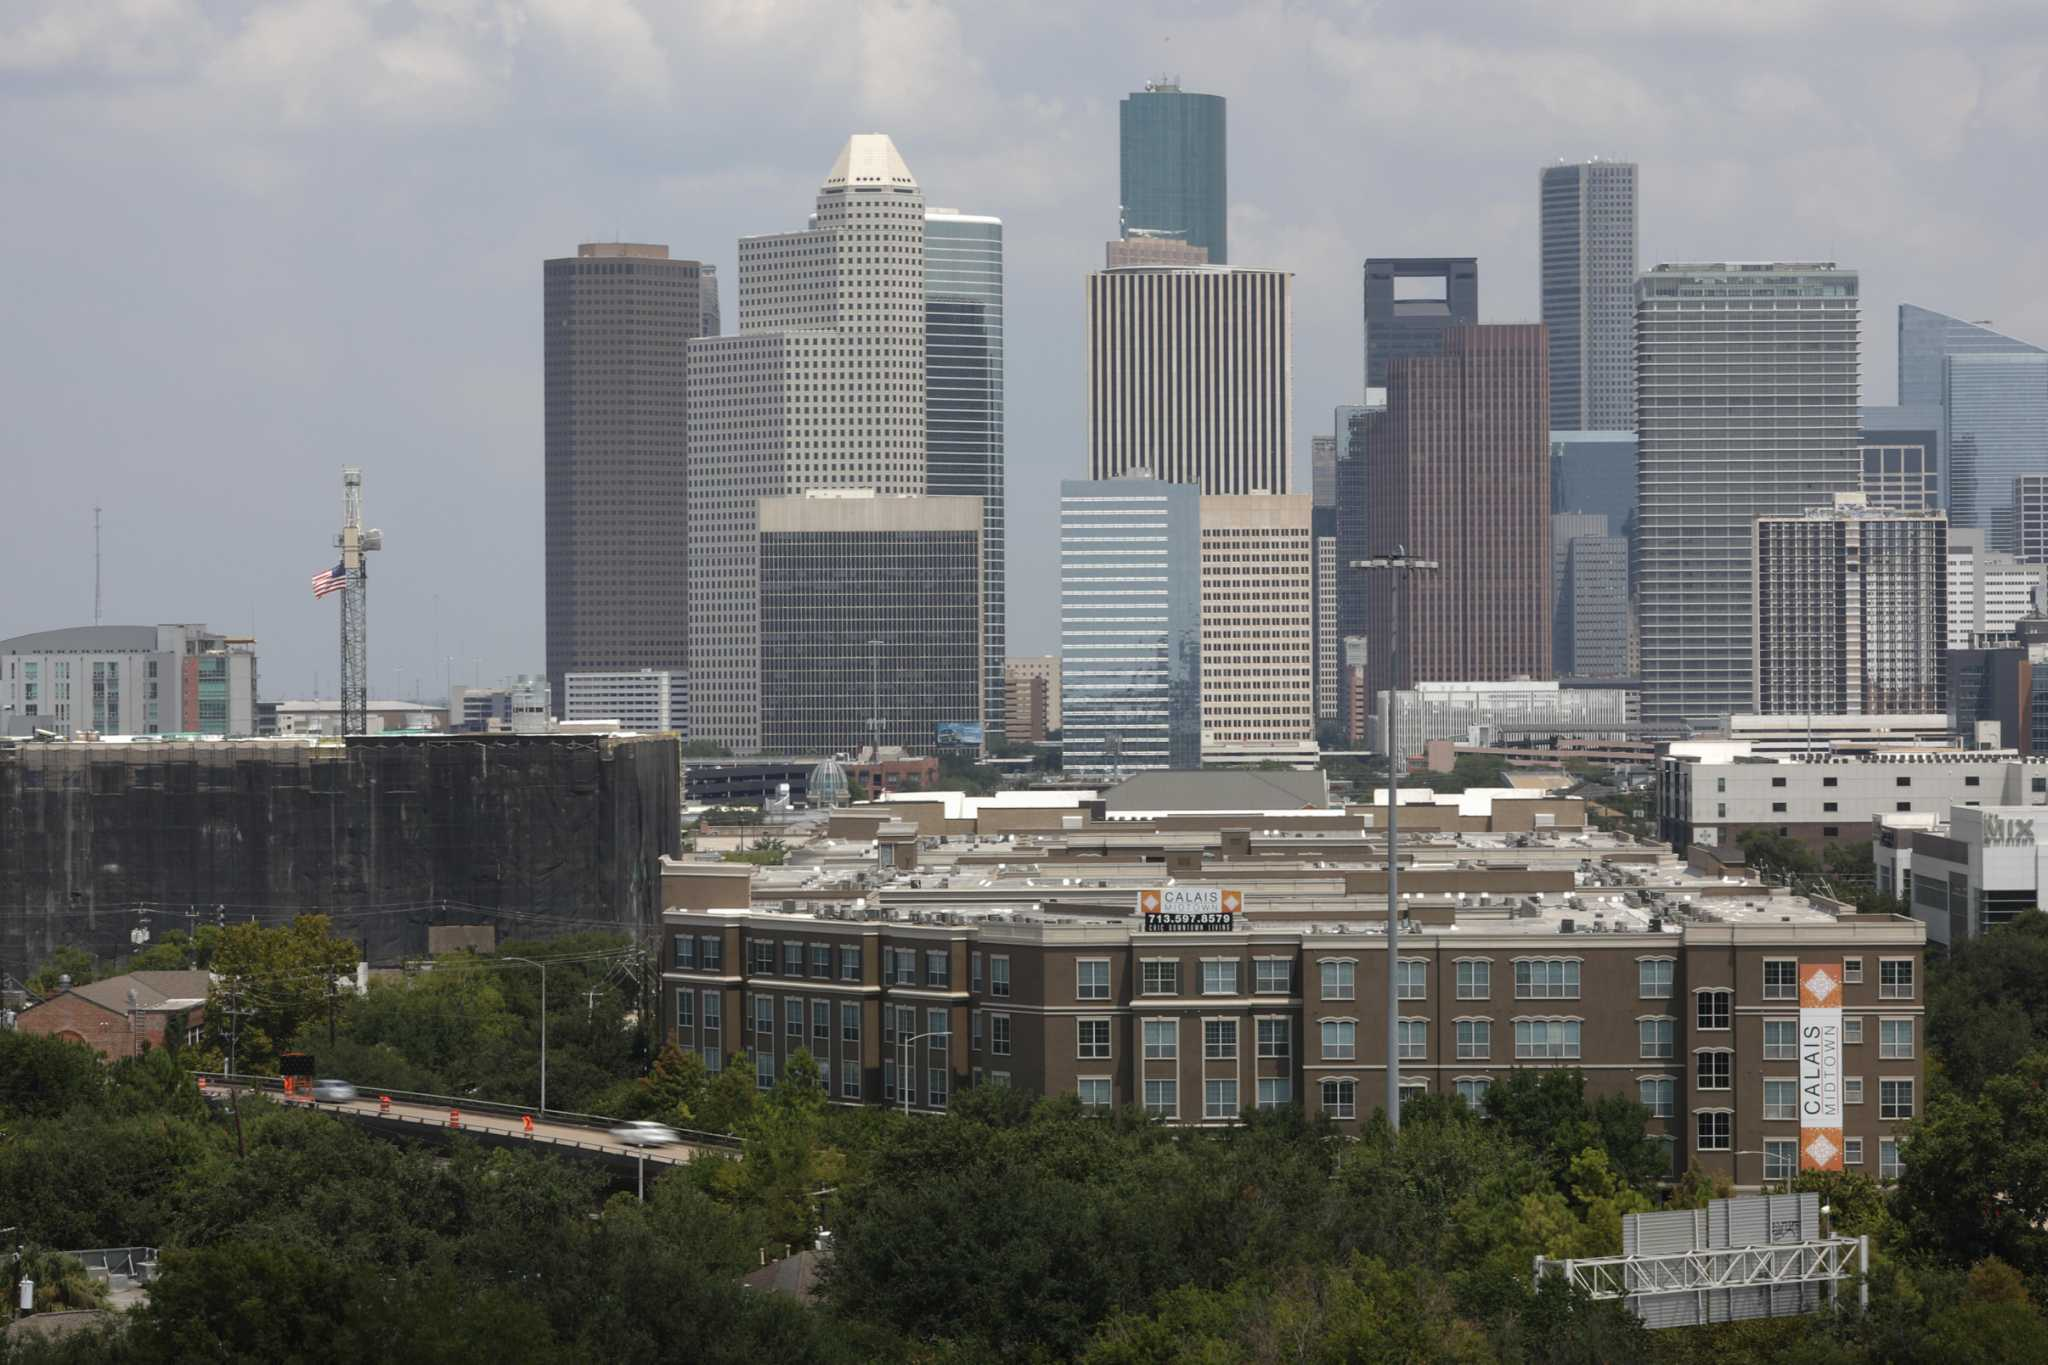 Houston is now a Resilient City What does that mean